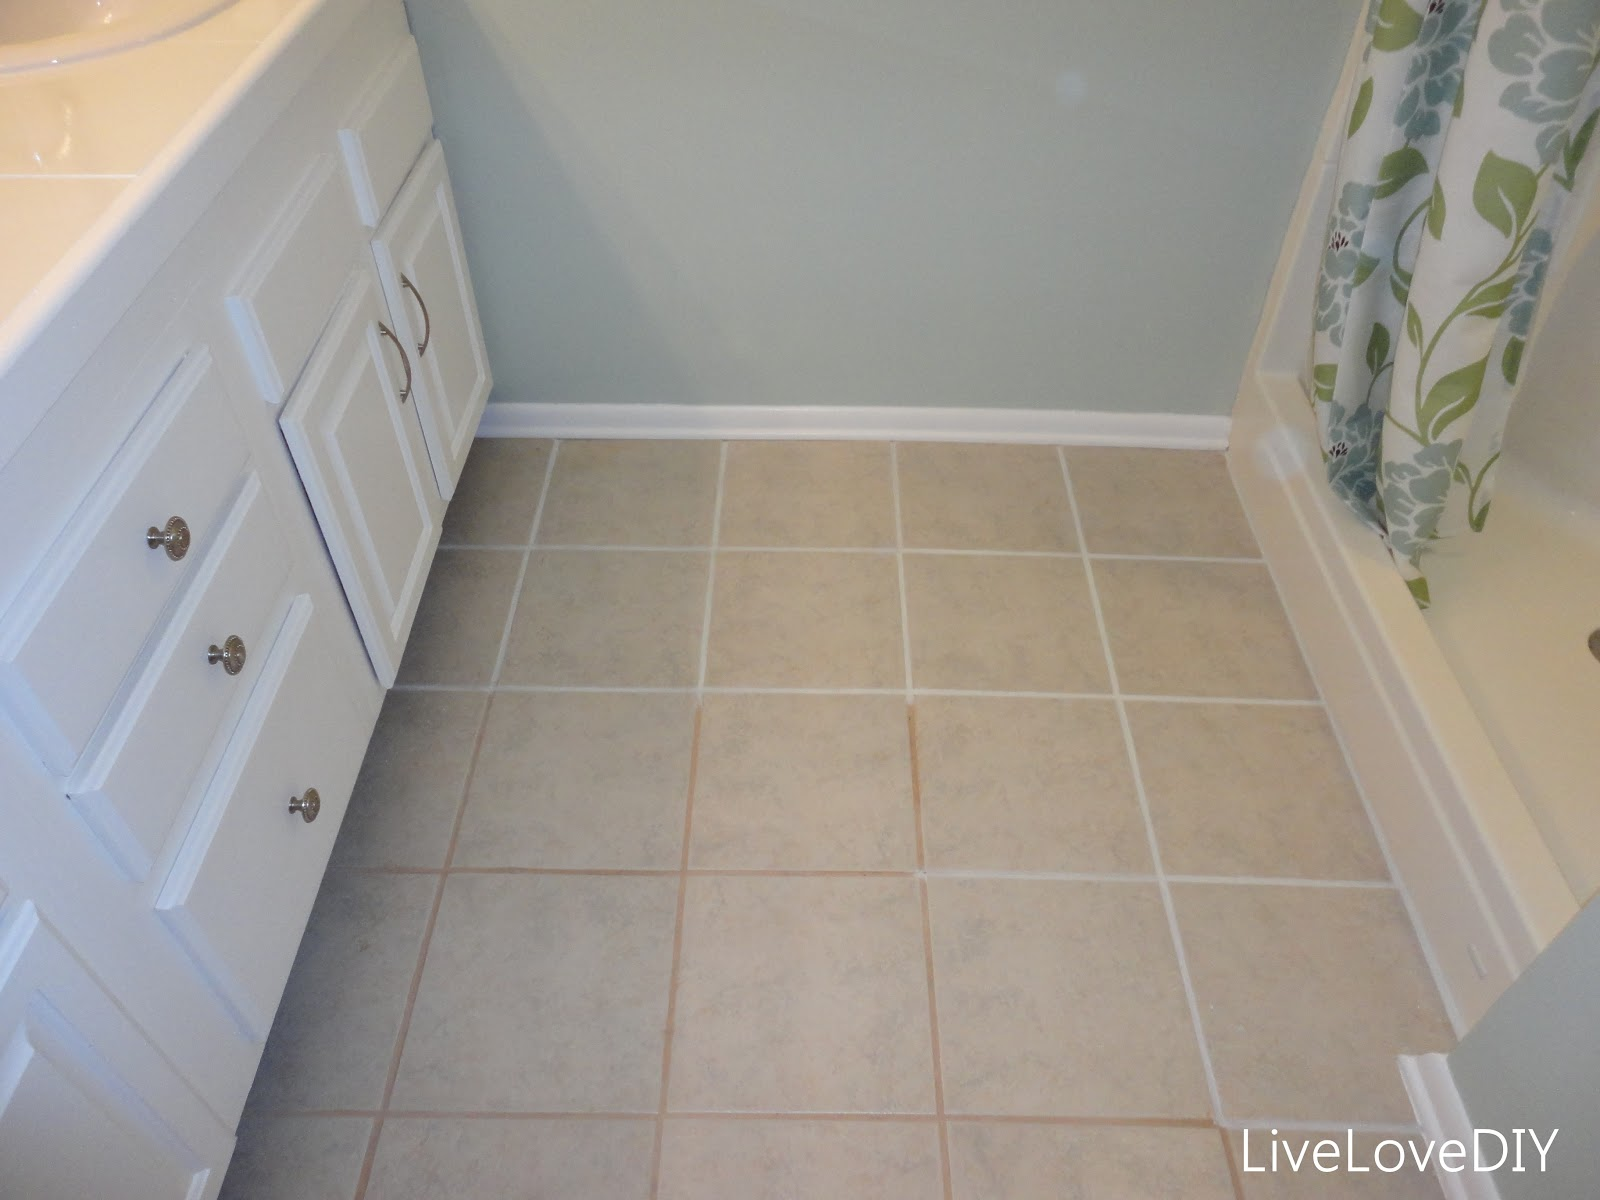 LiveLoveDIY  How To Restore Dirty Tile Grout To